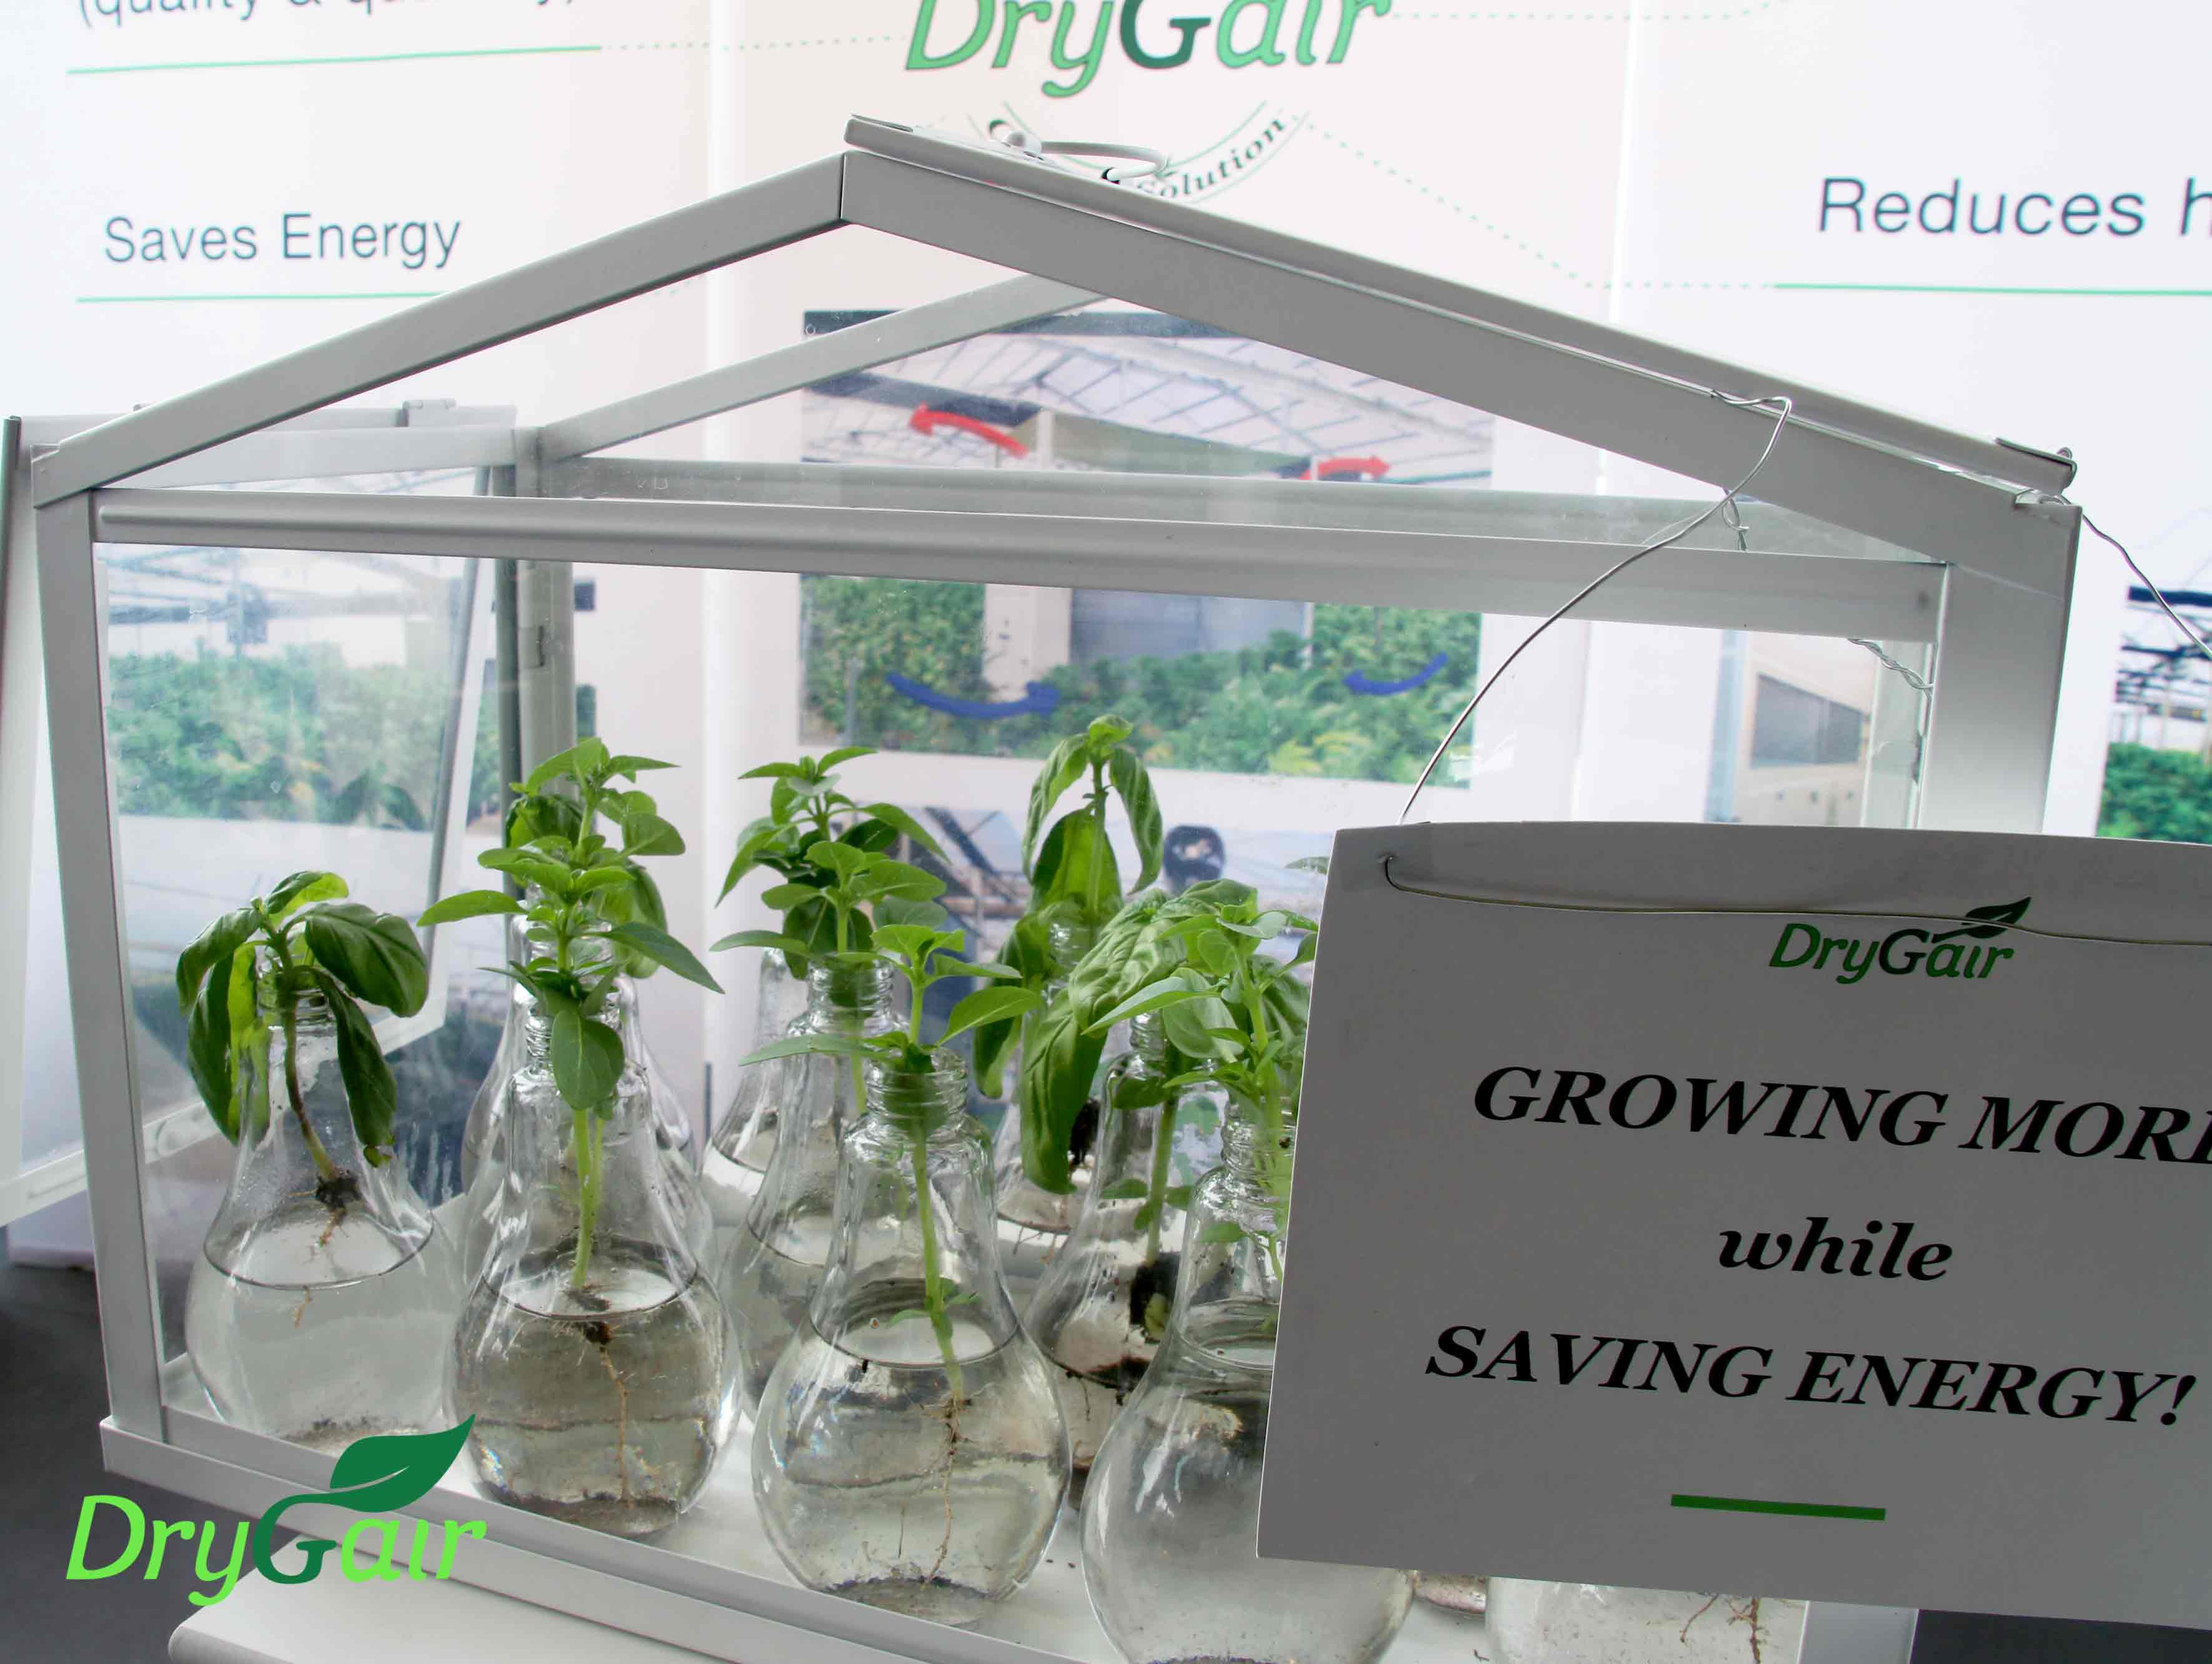 Drygair growing more saving energy